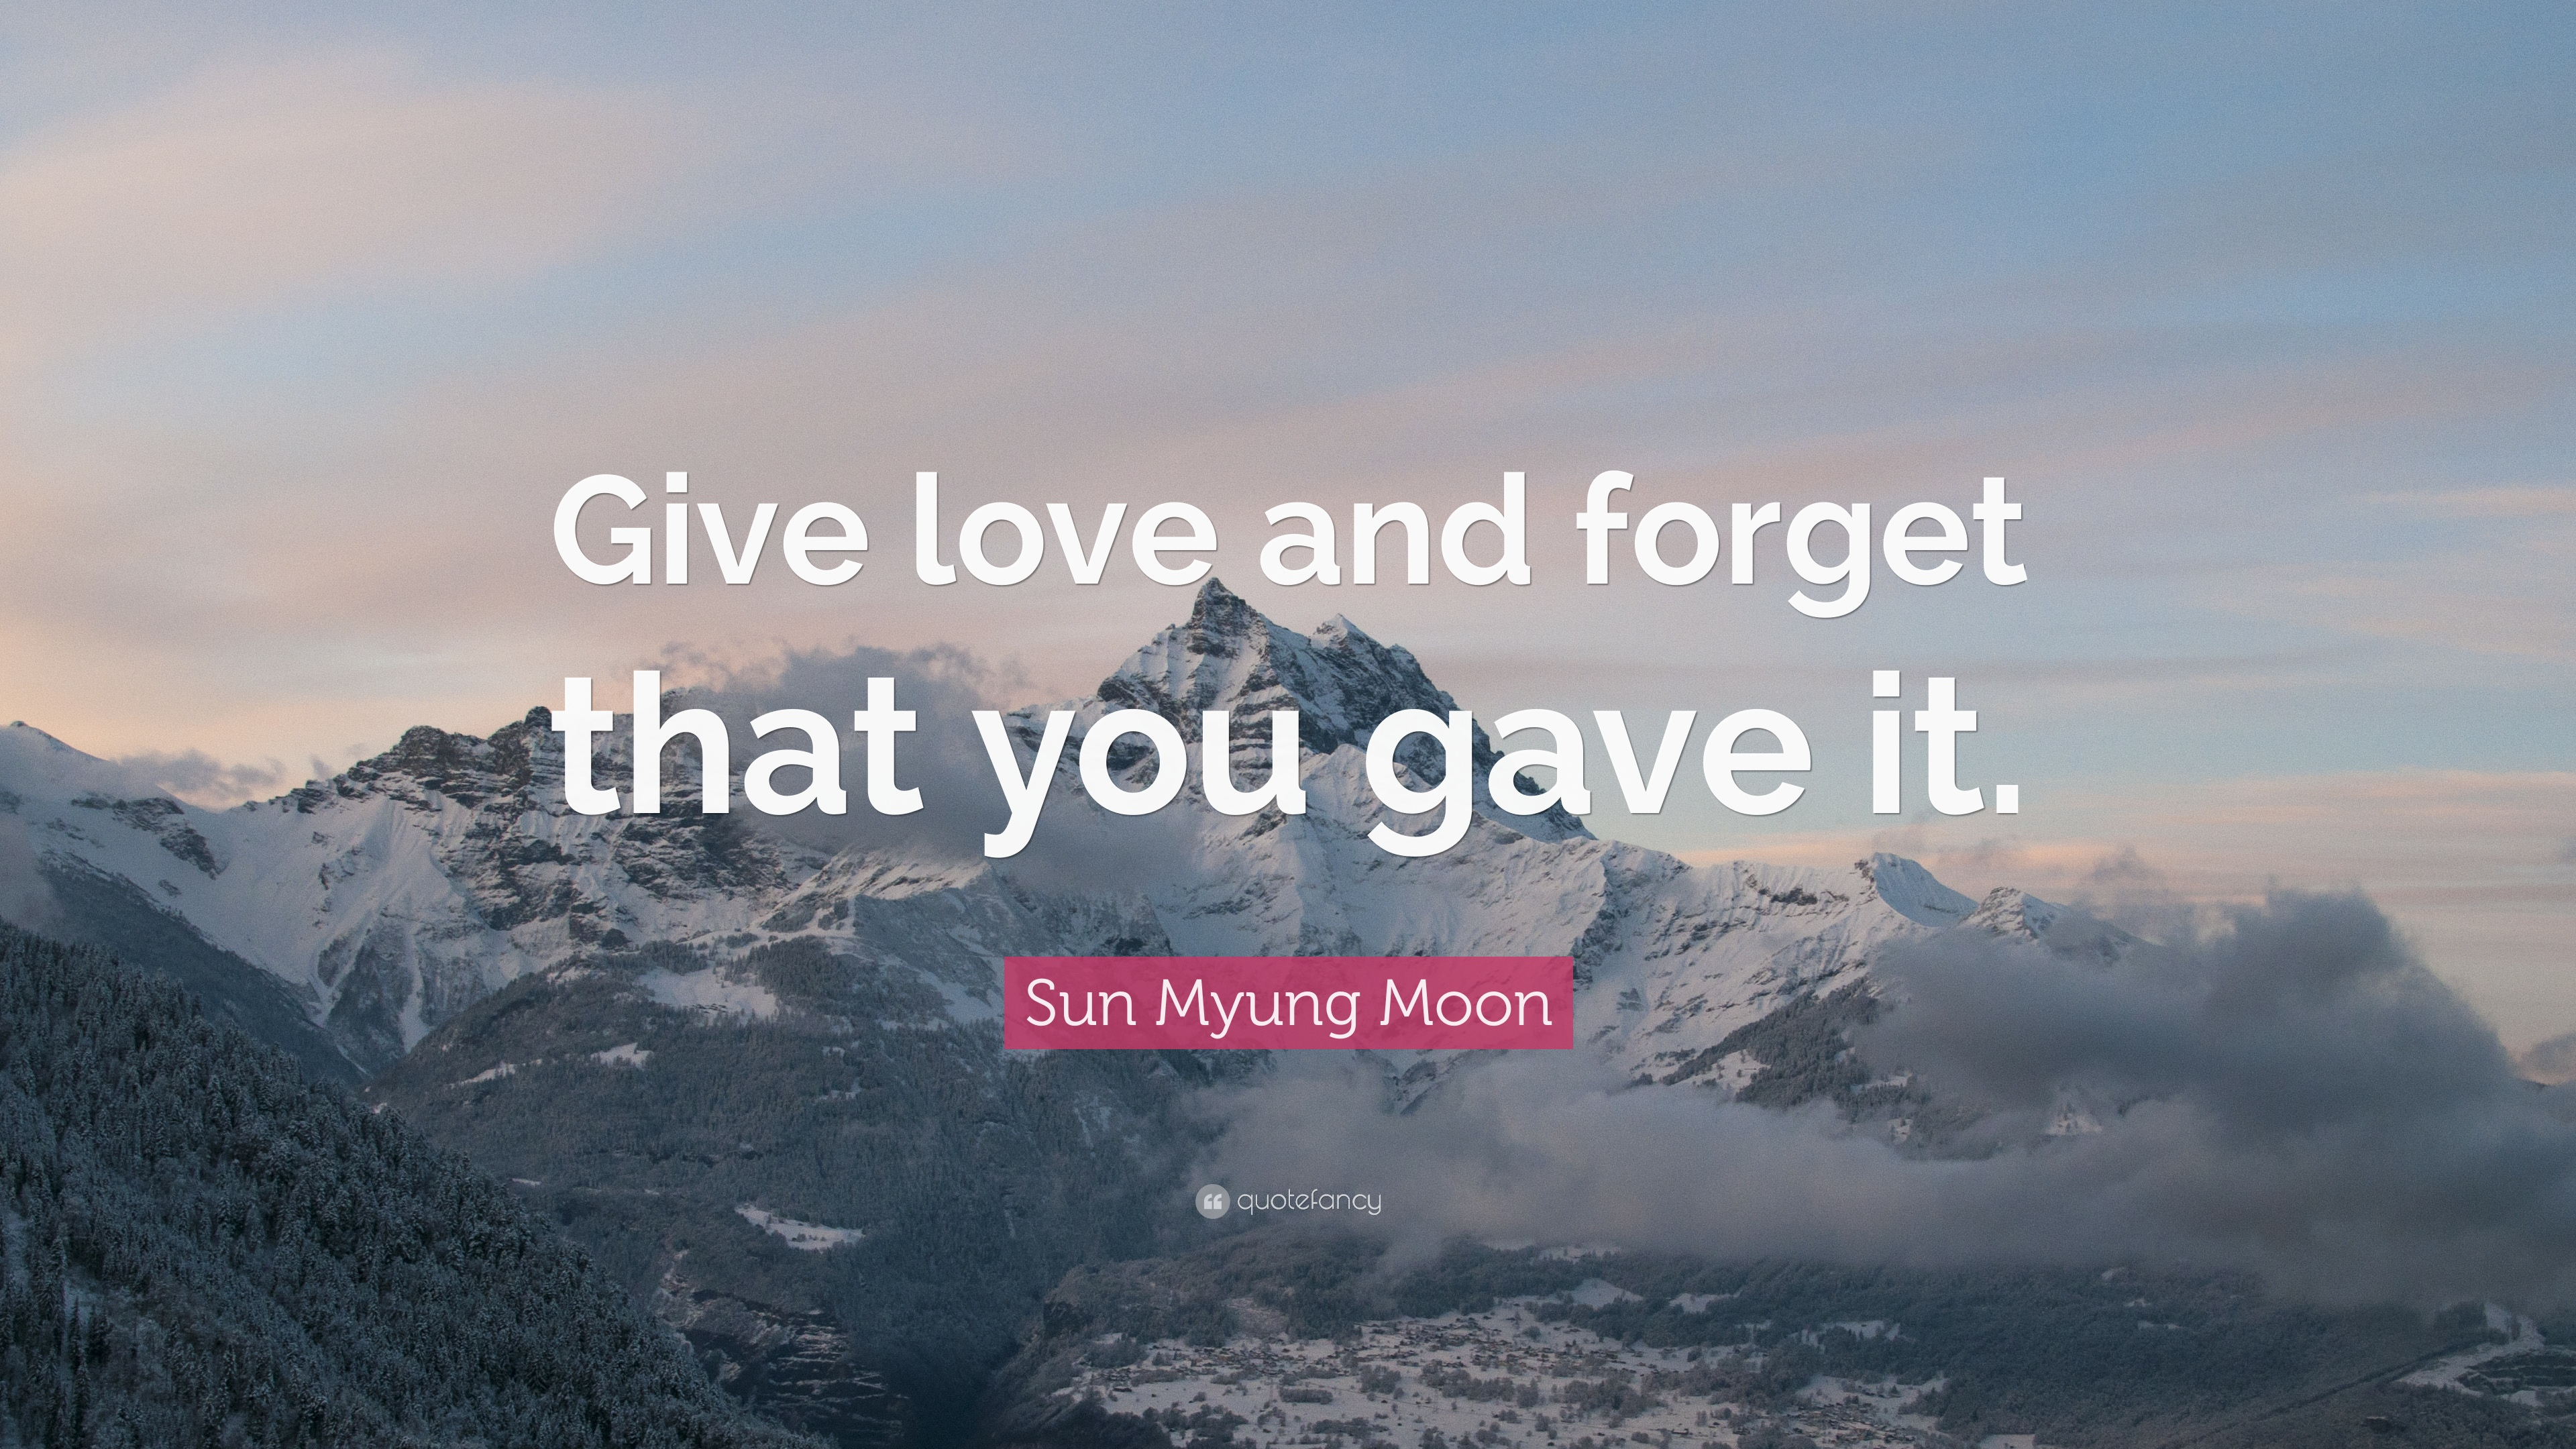 Sun Myung Moon Quote: U201cGive Love And Forget That You Gave It.u201d